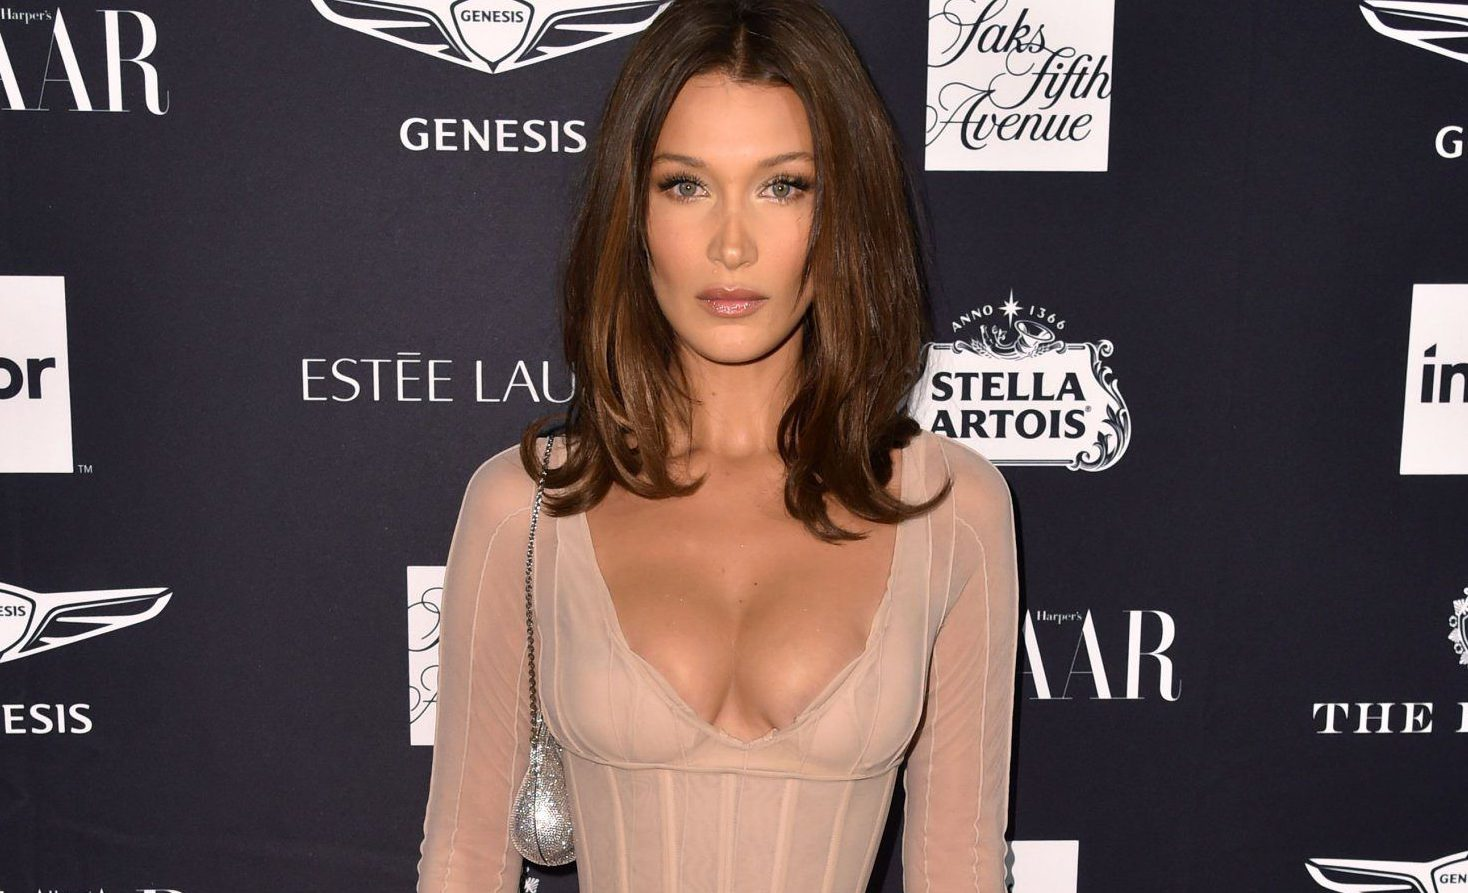 Bella Hadid hits back at hater who tells her to 'eat a cheeseburger' before Victoria's Secret fashion show